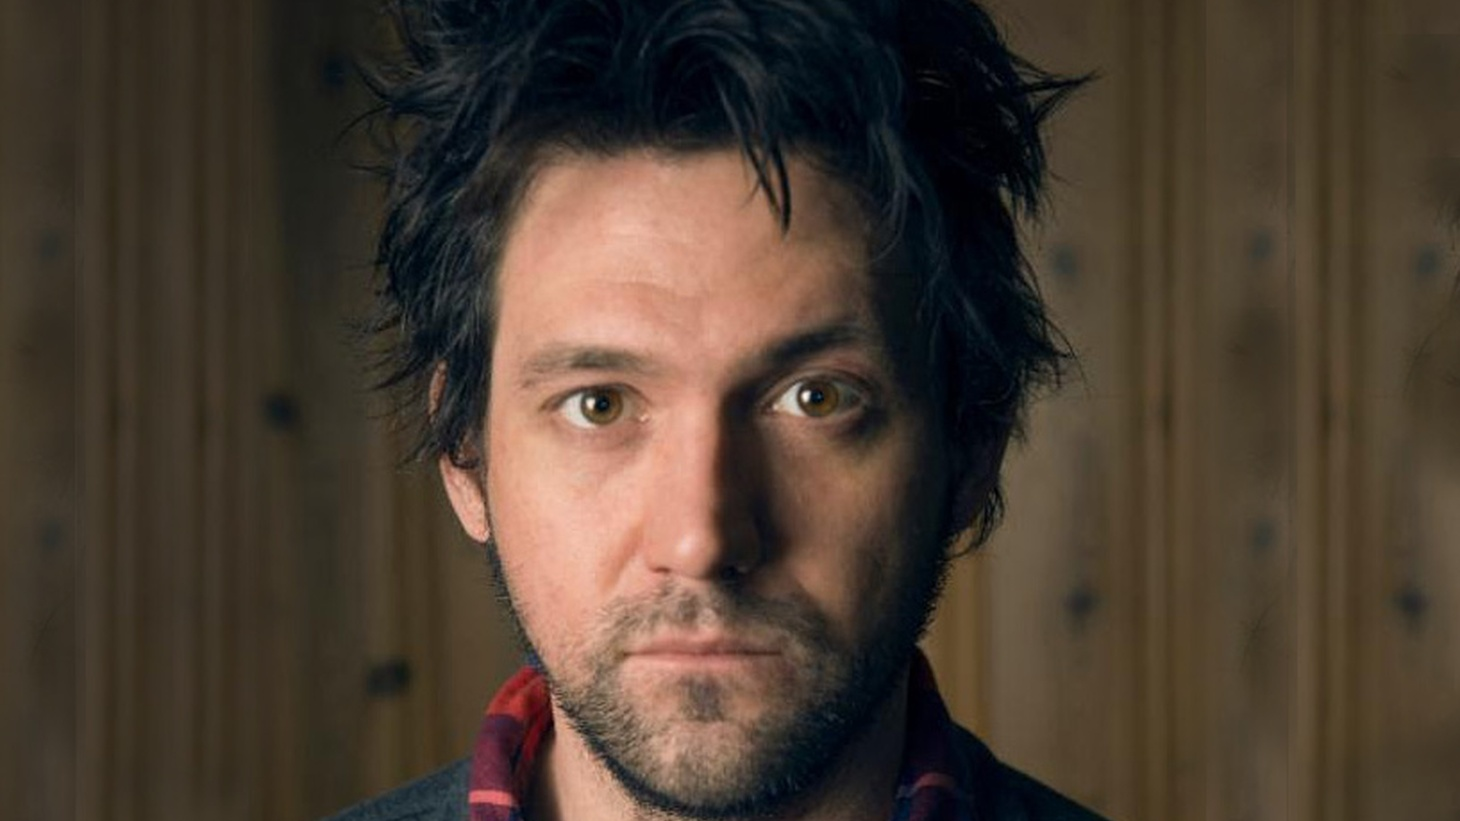 When Conor Oberst recorded Ruminations last year his intention was to flush out the tracks with a full band, but those closest to him urged him to release it in its raw solo, acoustic form. This year he finally got his wish.